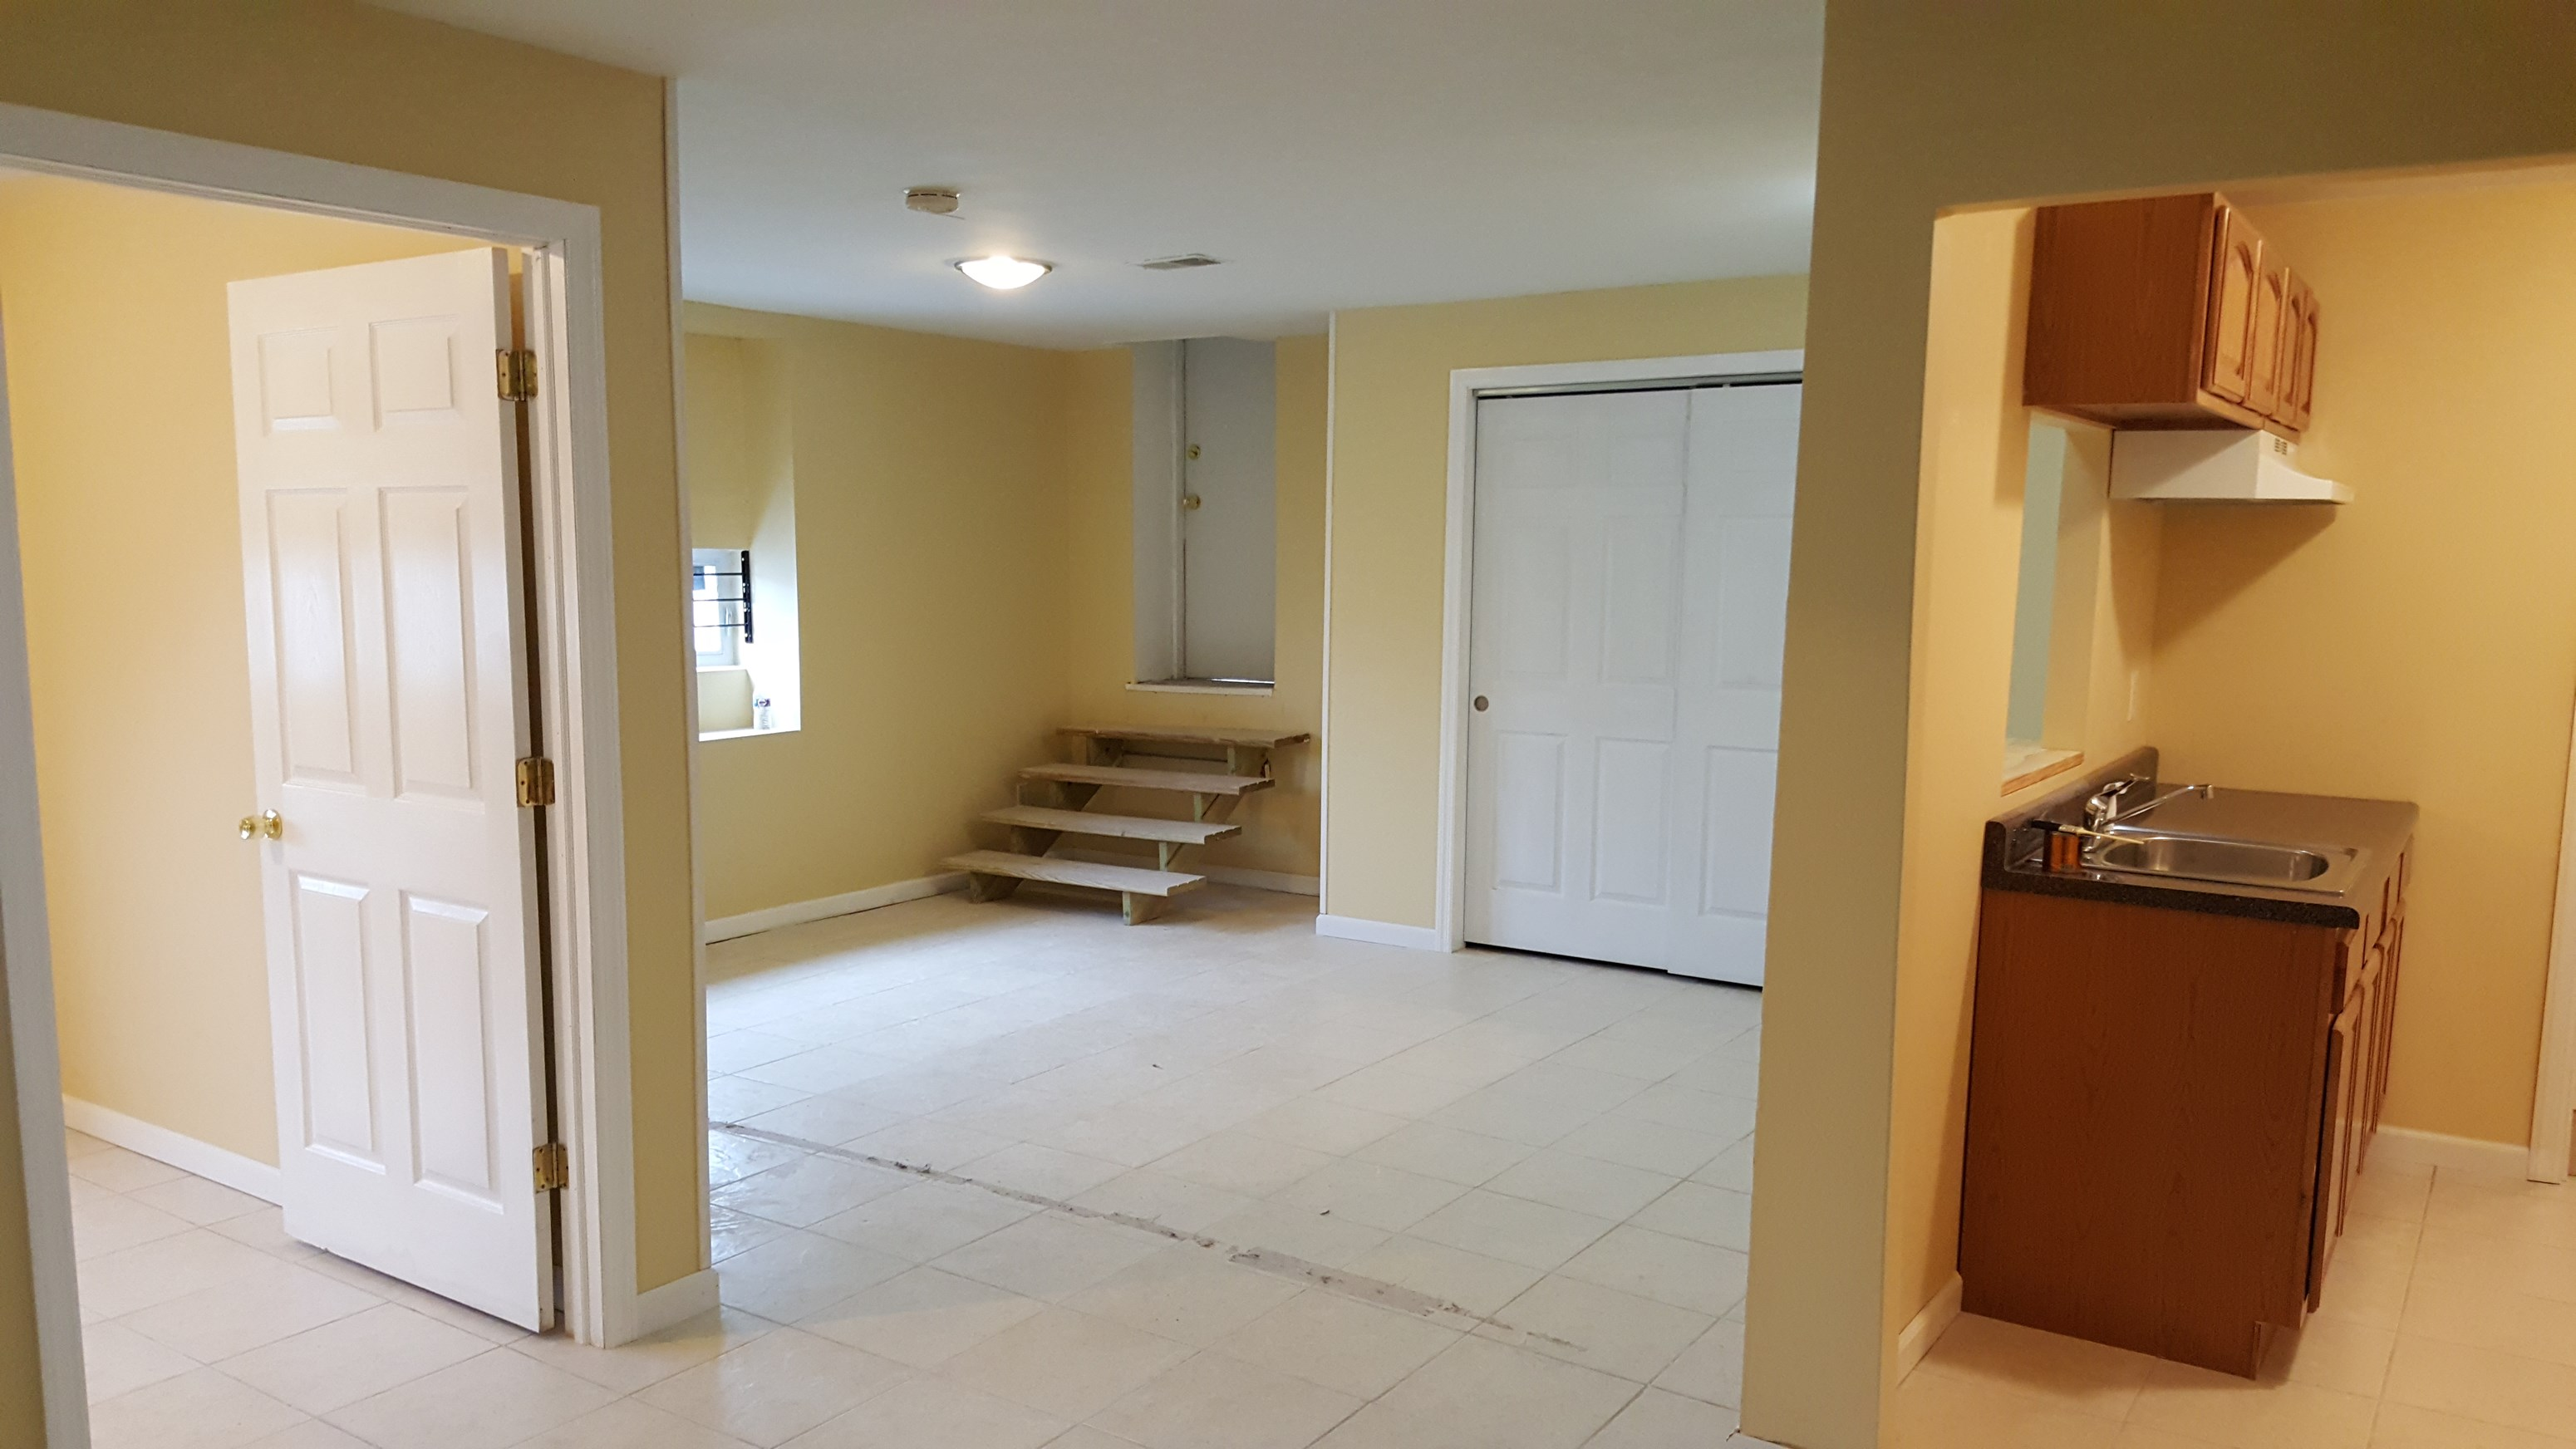 Rooms for Rent Jersey City, NJ – Apartments, House, Commercial ...